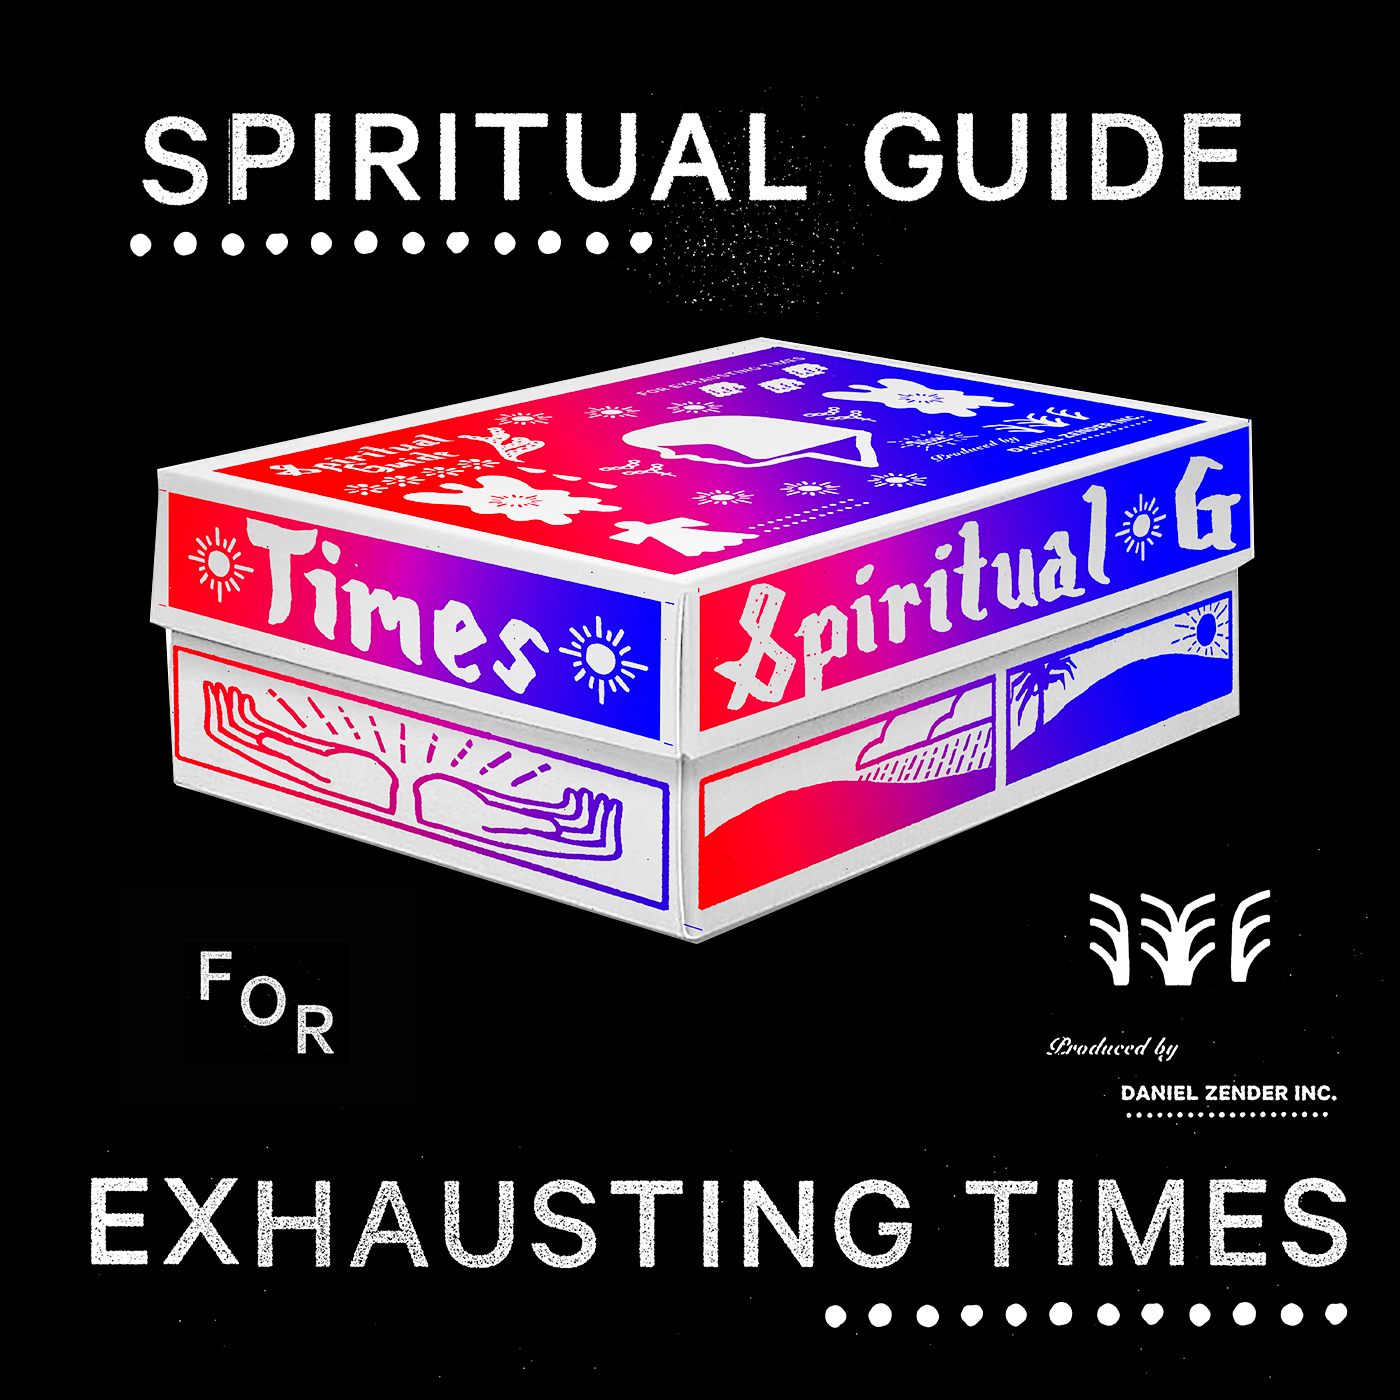 My Spiritual Guide for Exhausting Times.   A box of ephemera and periapts. Includes two zines, a talisman, and seeds. Available for purchase here:   https://www.etsy.com/listing/724765693/spiritual-guide-for-exhausting-times